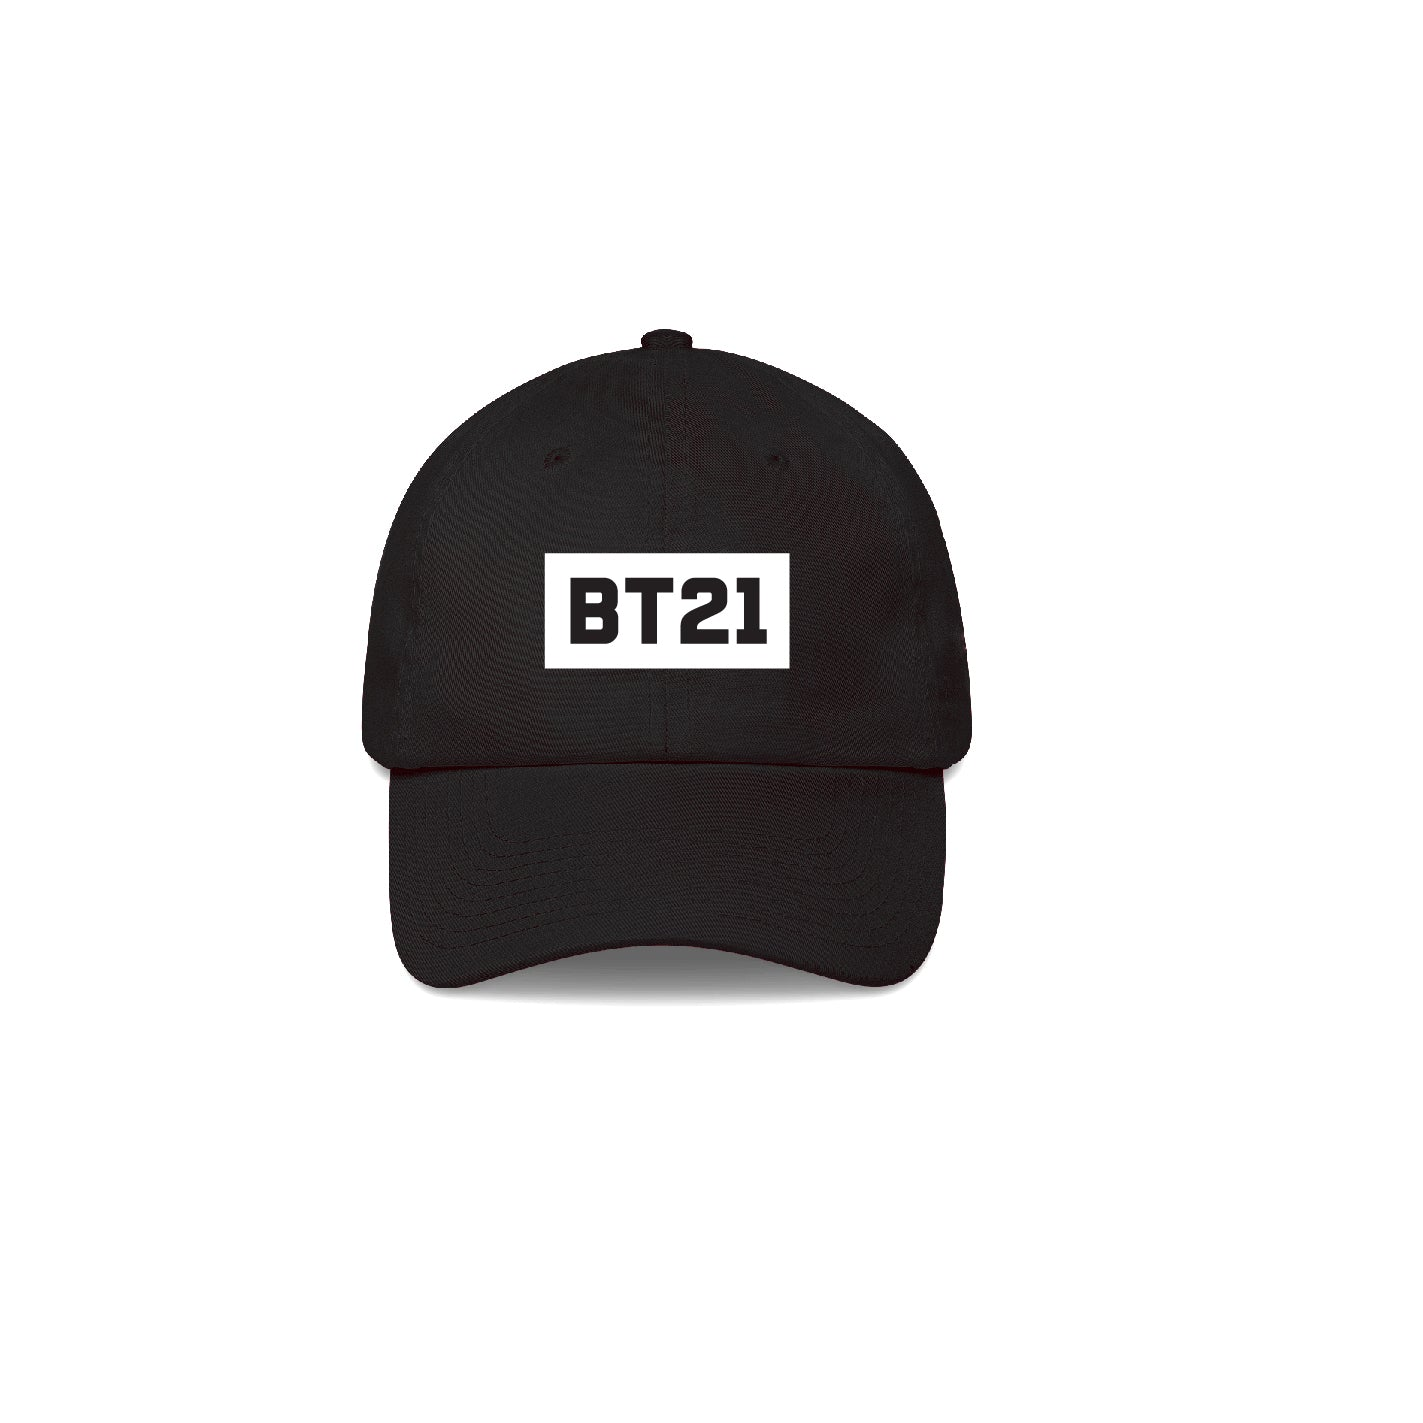 BT21 Logo Black Cap